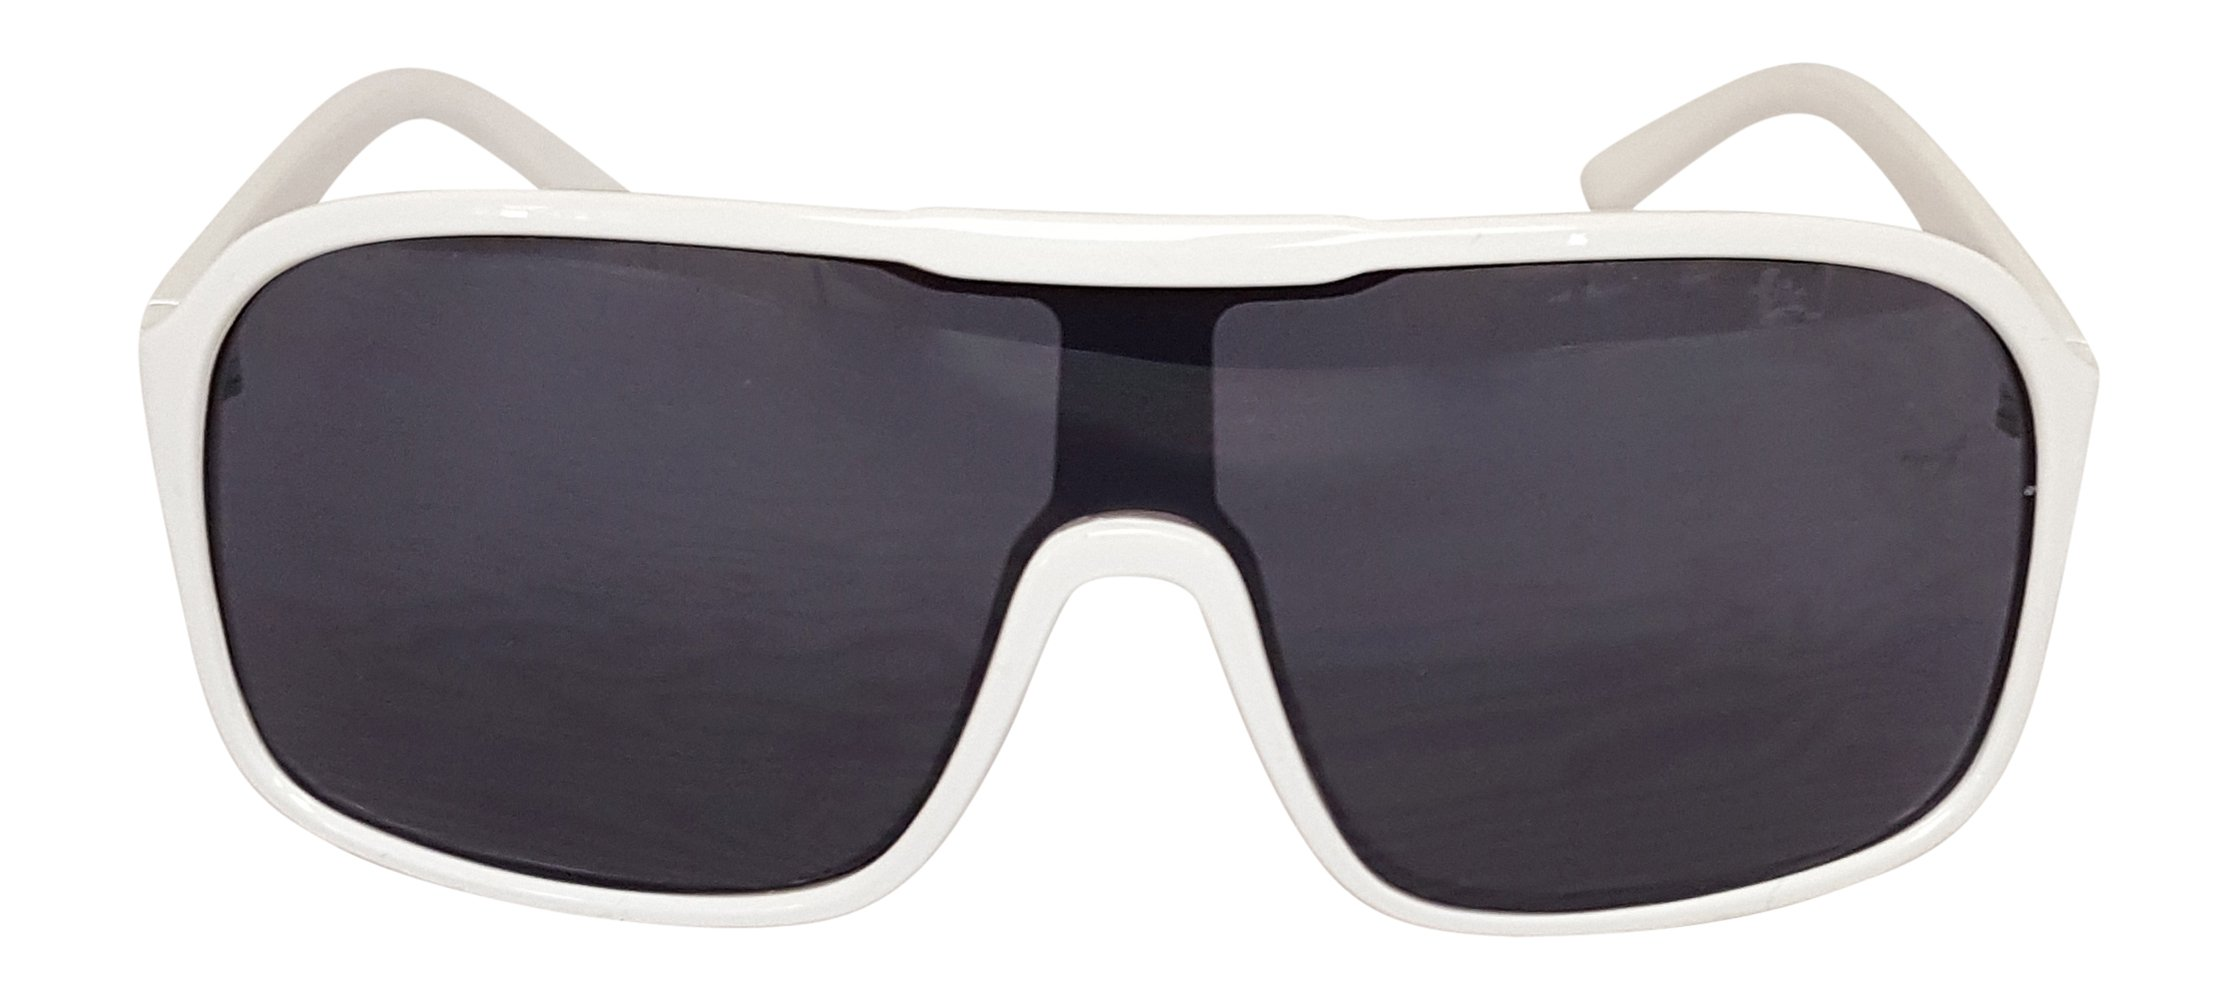 Party Sunglasses Shades for Macho Man Costume-White